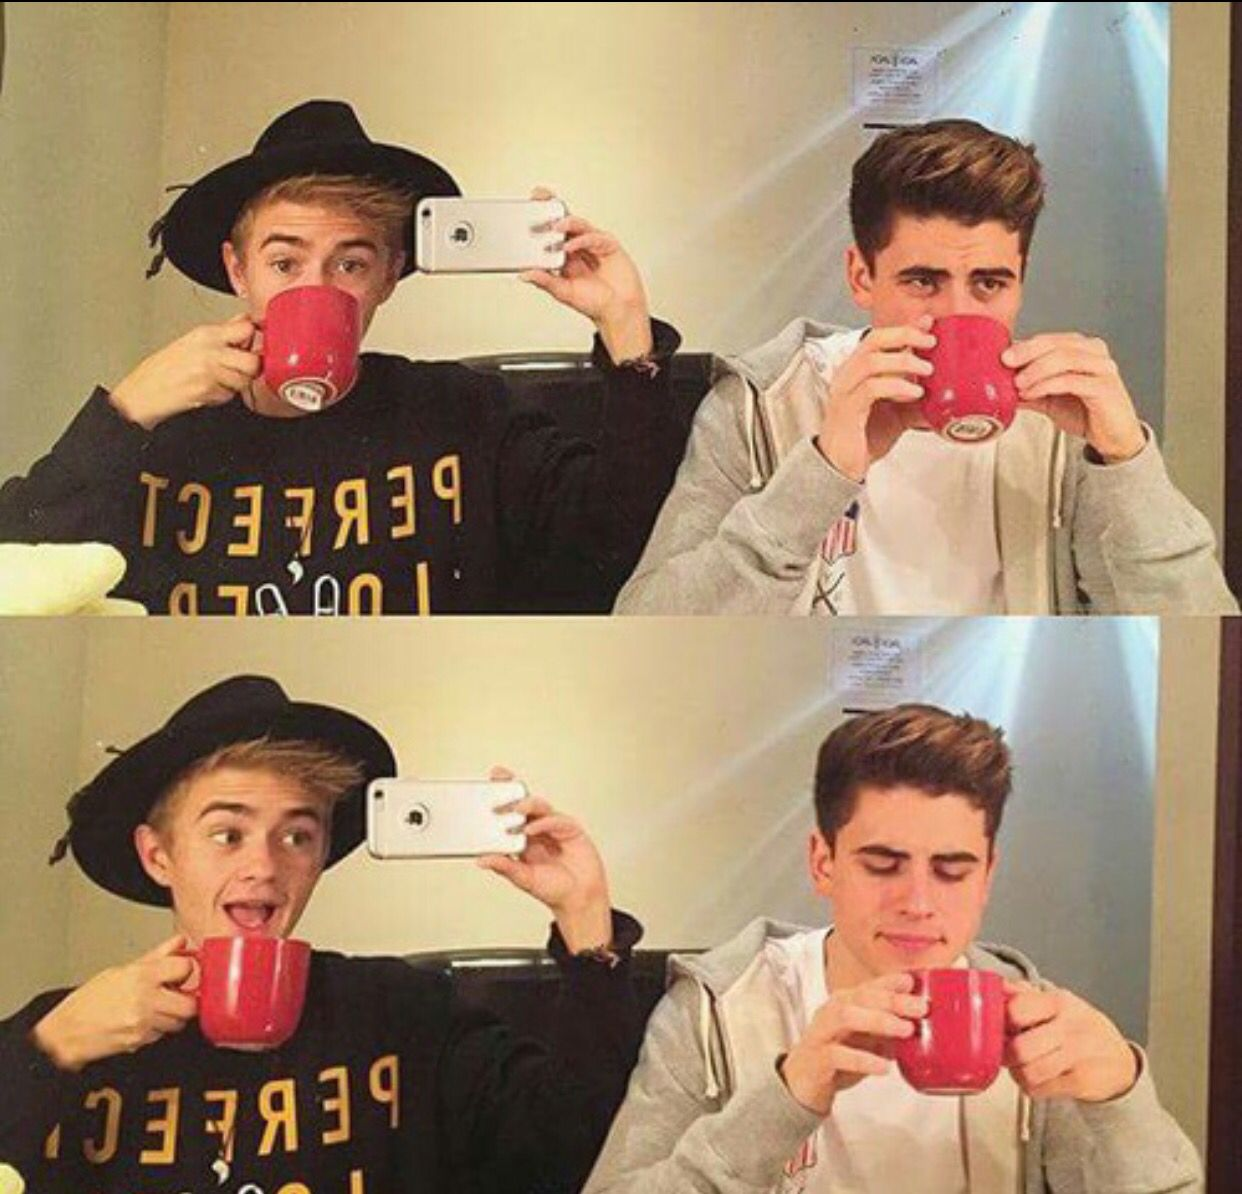 Jack & Jack staying classy with those red cups;)